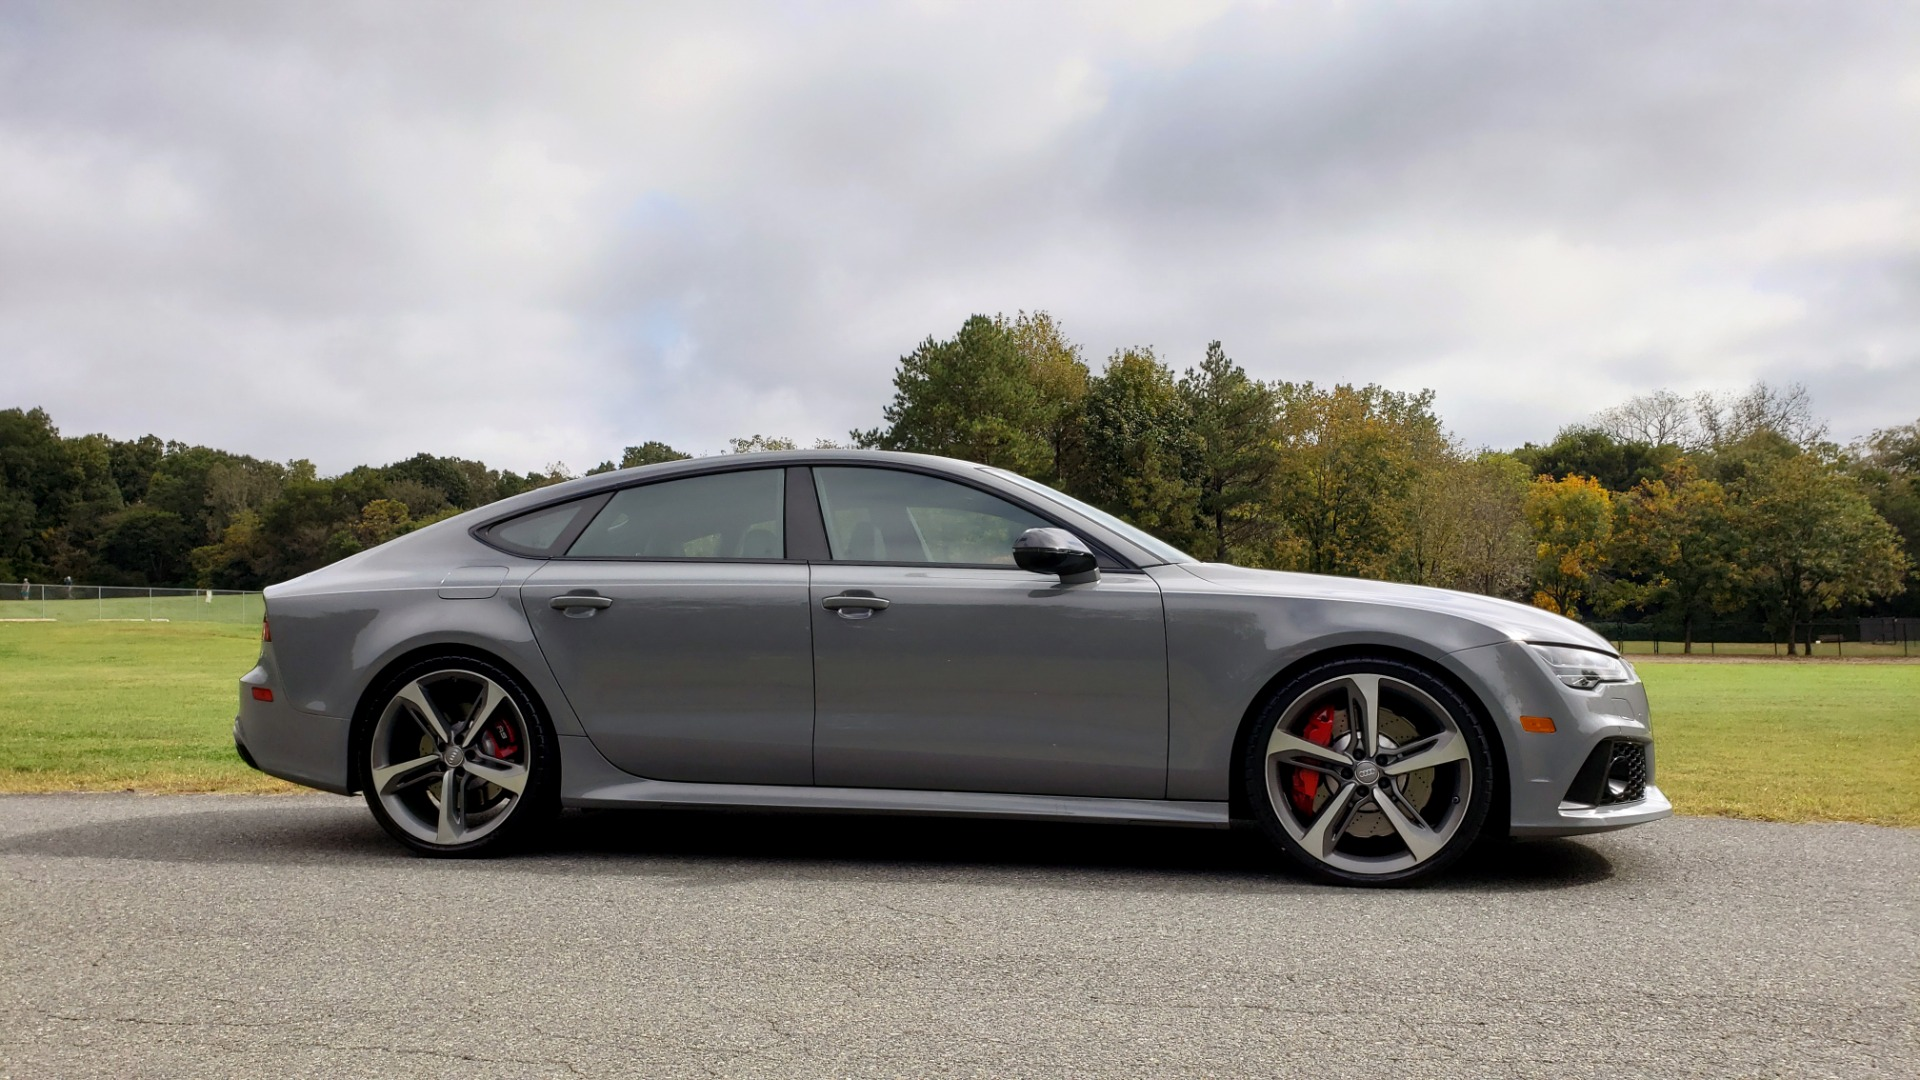 Used 2018 Audi RS 7 for sale Sold at Formula One Imports in Charlotte NC 28227 4